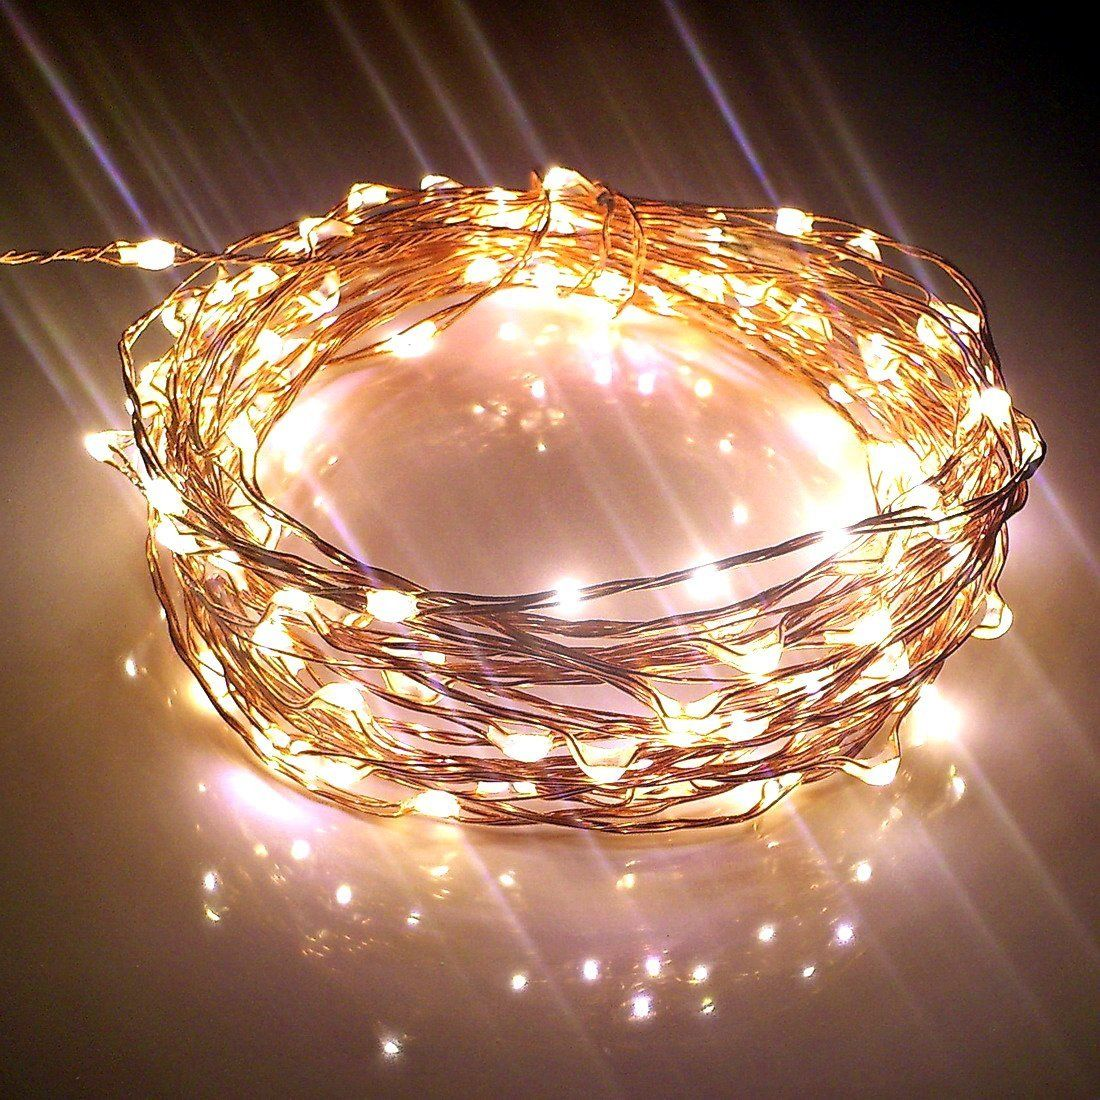 starry string lights w 120 warm white leds on